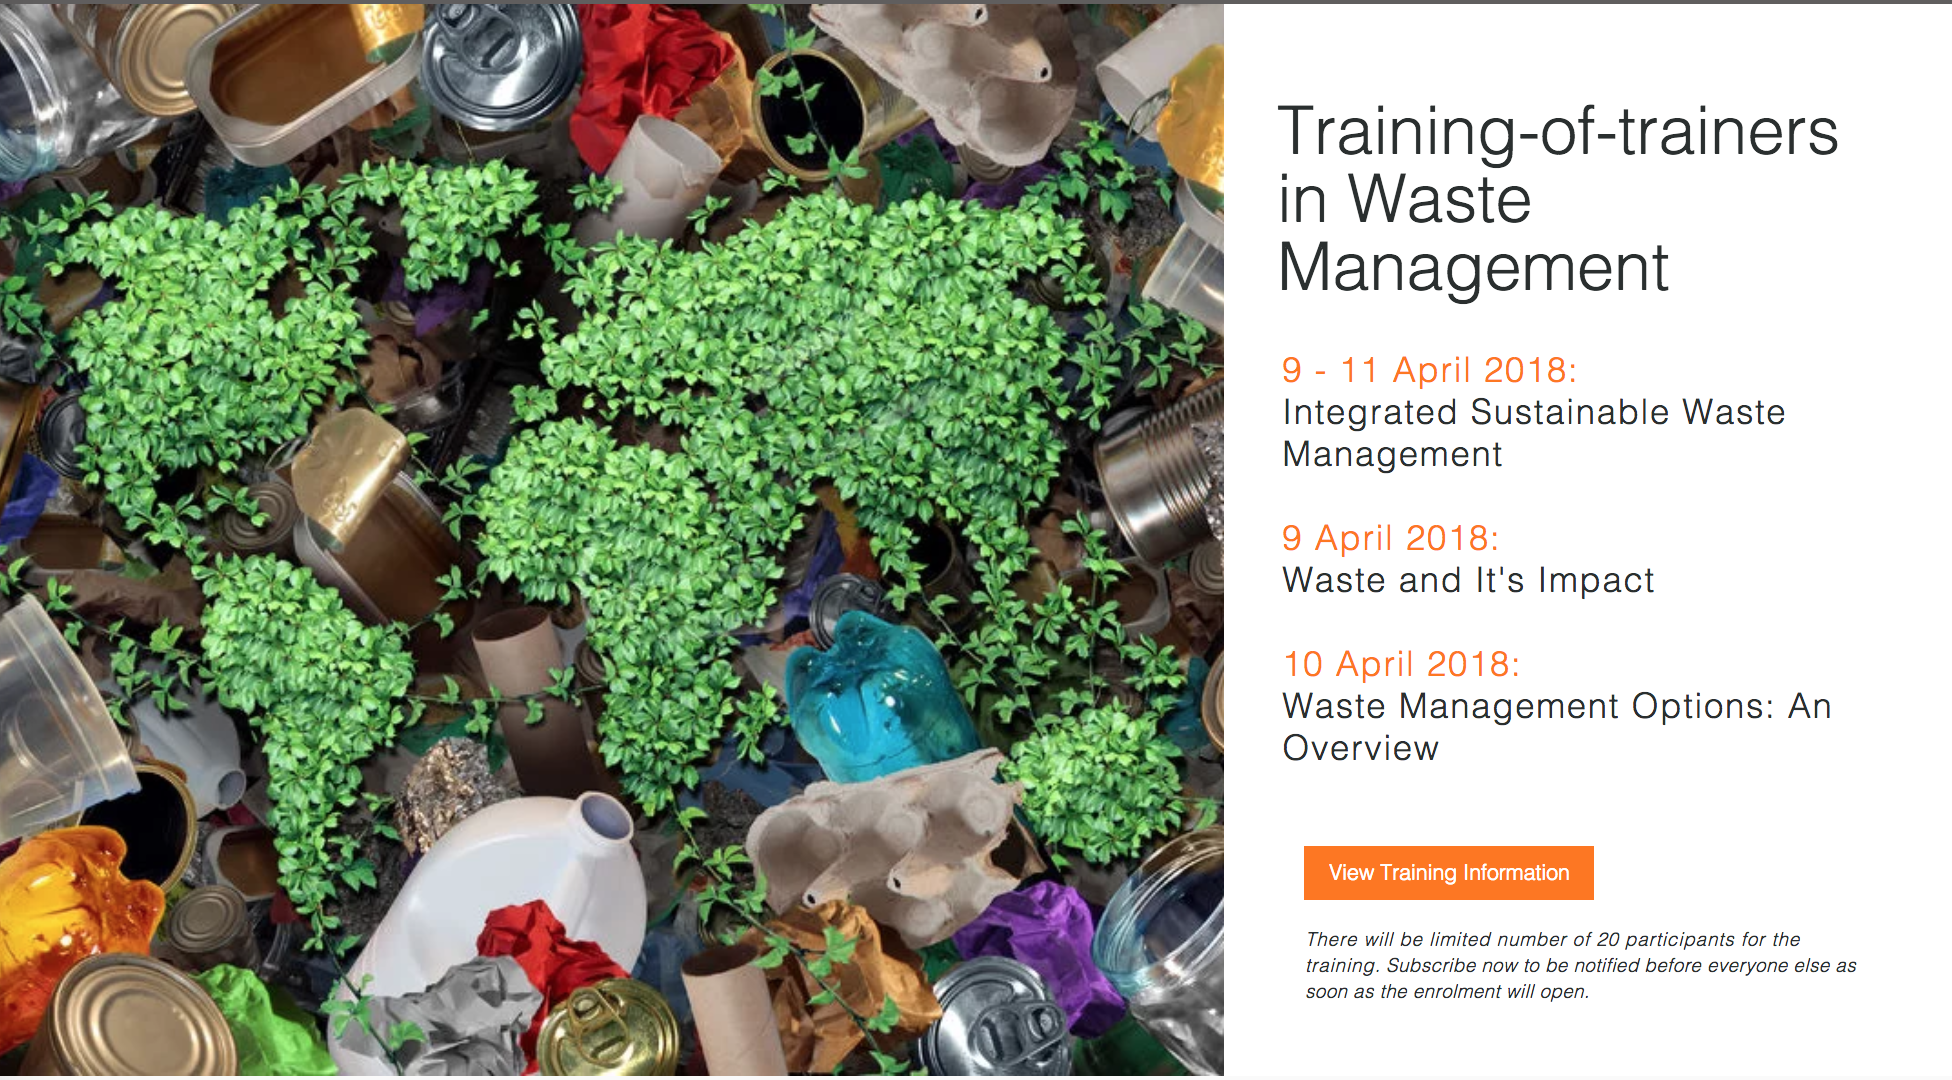 Training-of-trainers in Waste Management